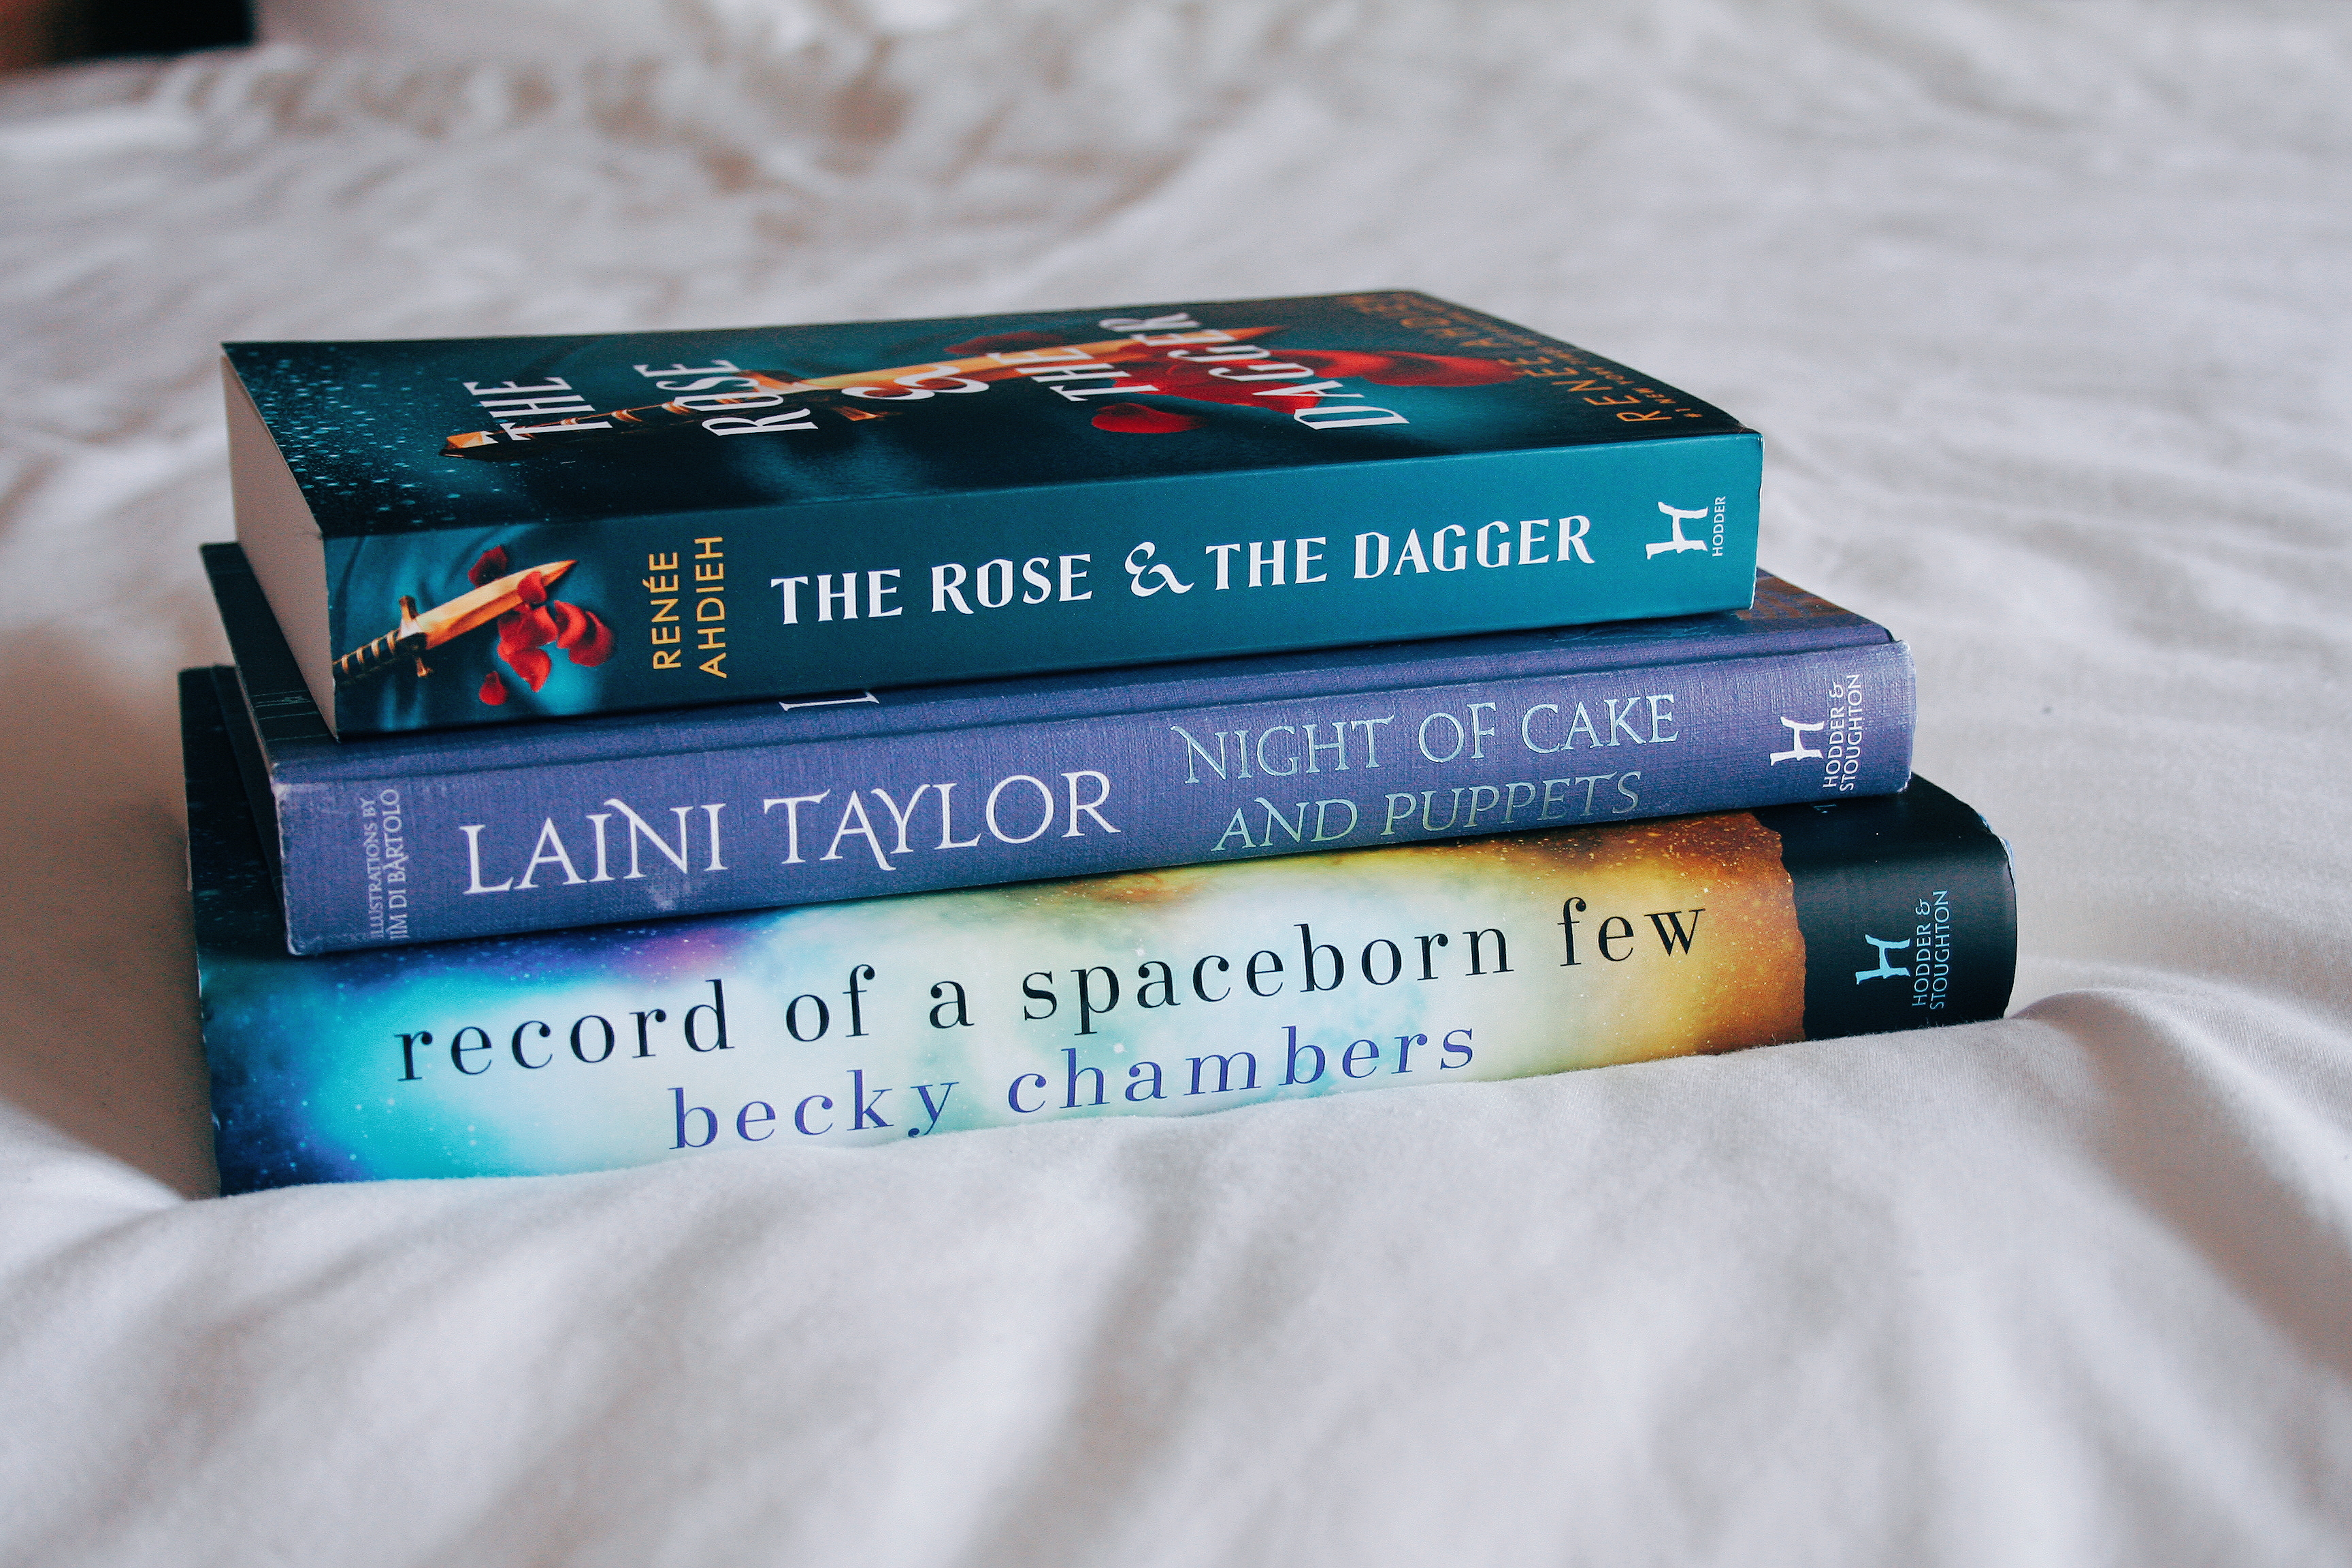 the rose and the dagger, night of cake and puppets, record of a spaceborn few